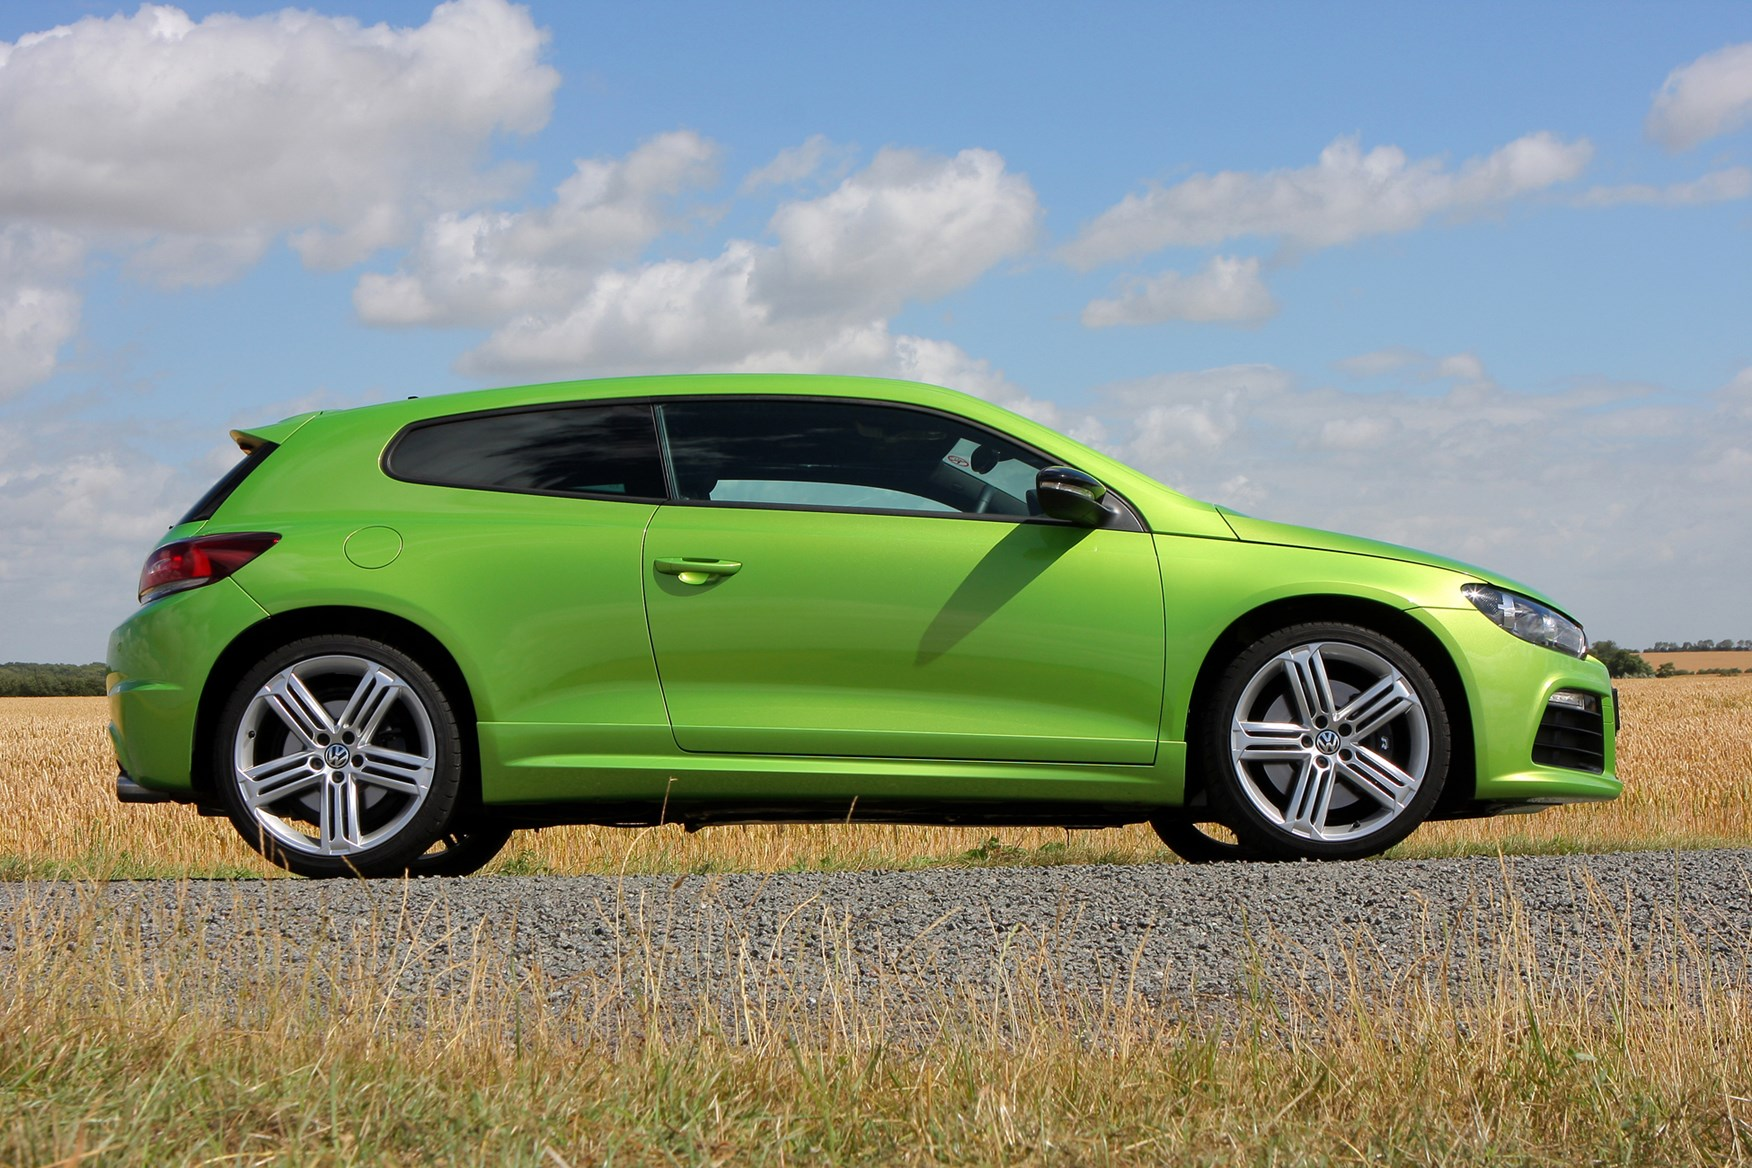 Used Volkswagen Scirocco R (2010 - 2018) Review | Parkers